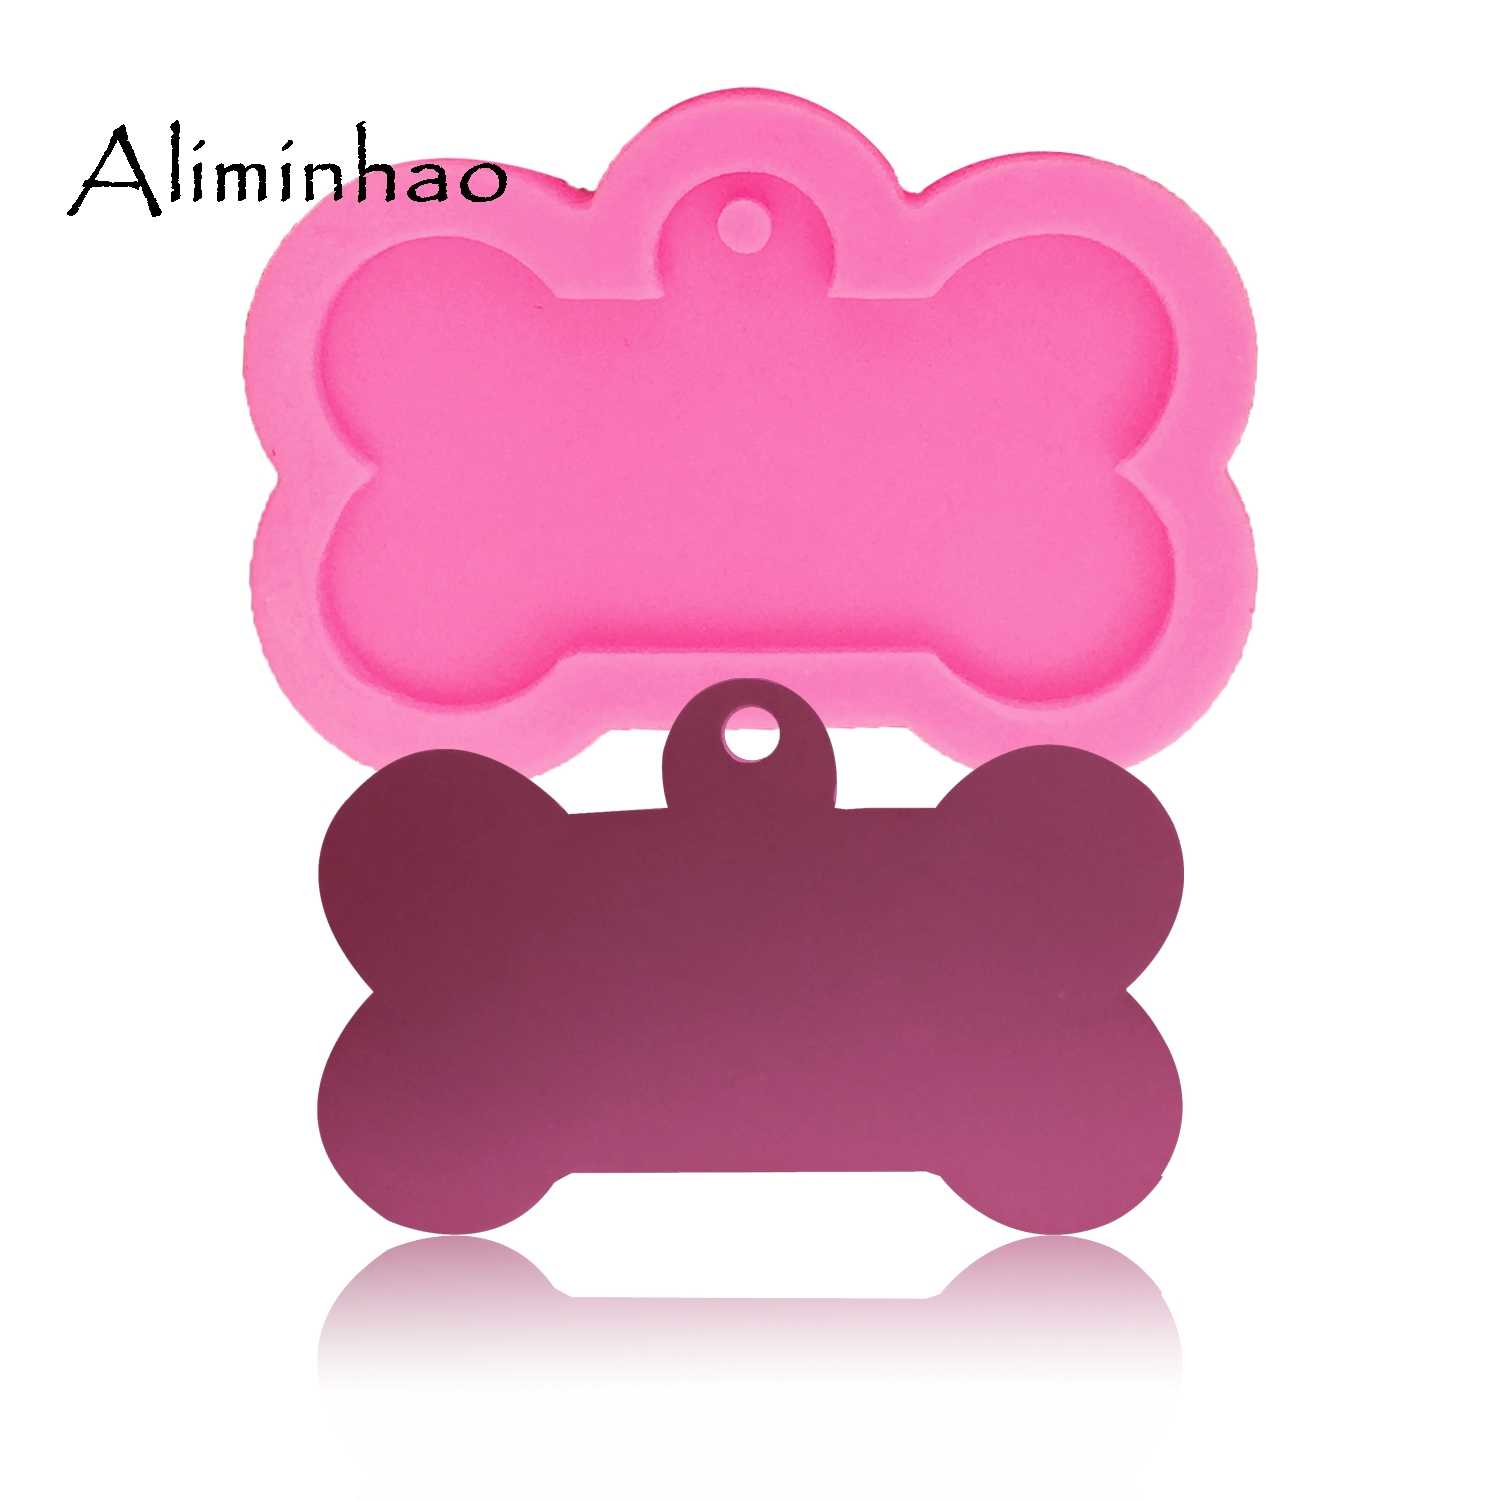 DY0061 Dog bone shape silicone mold for key chain Pendant moulds suitable  for polymer clay DIY Jewelry Making epoxy Resin mold